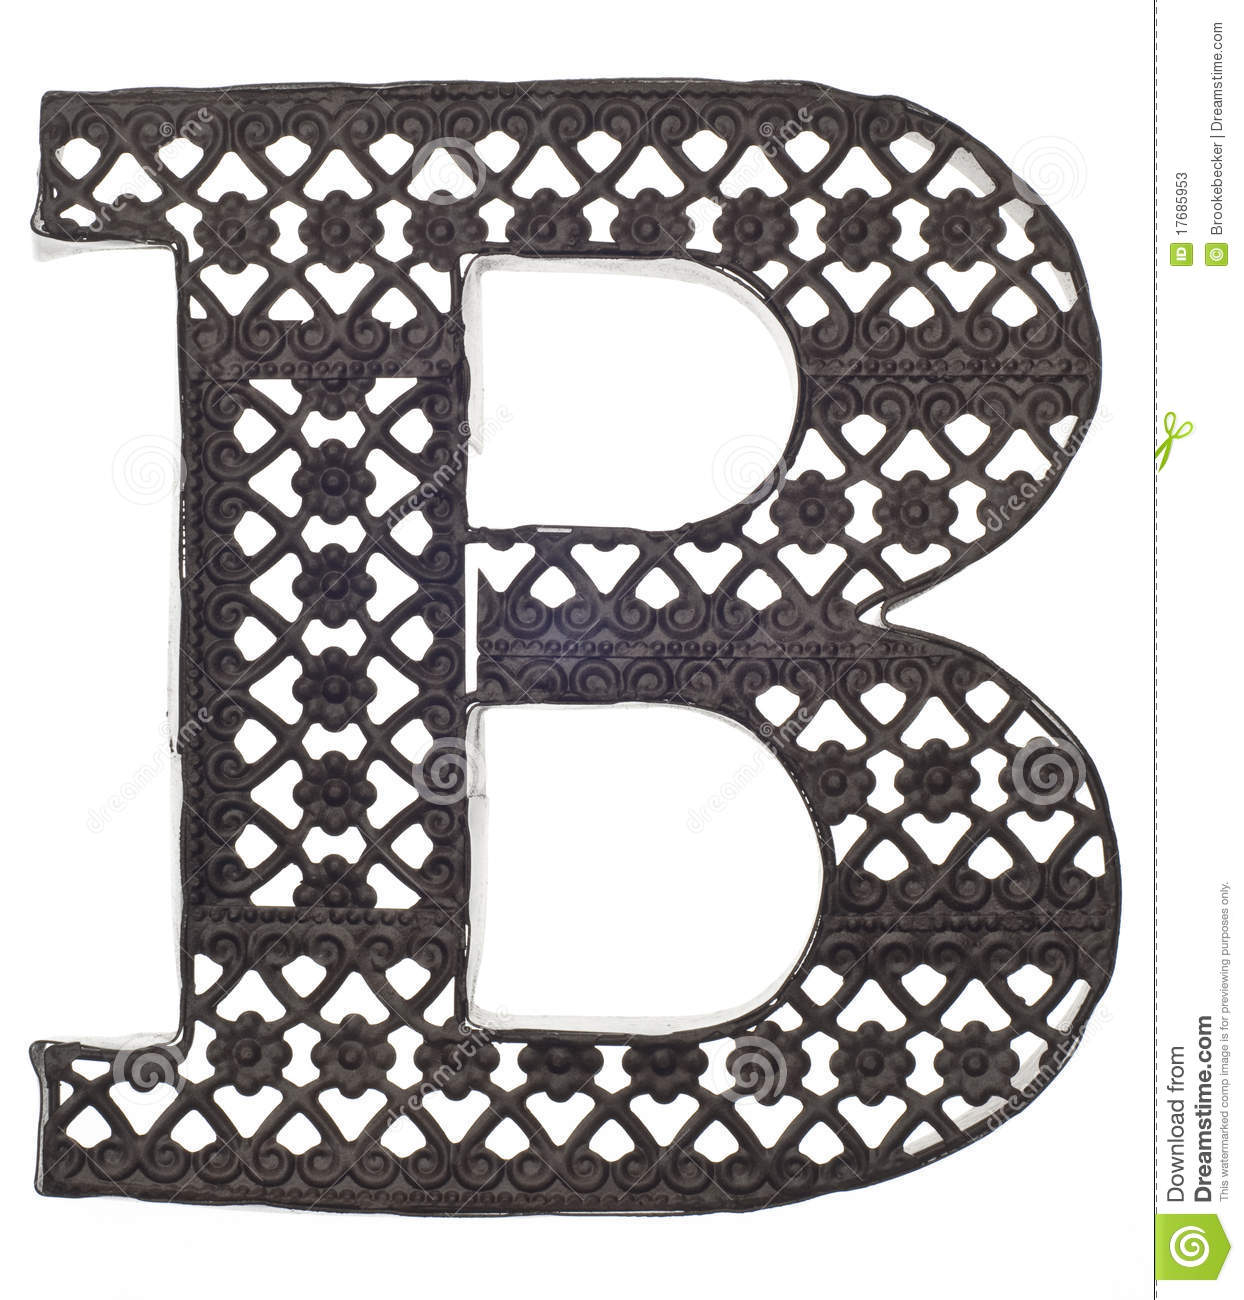 decorative metal letter b stock image image of letter. Black Bedroom Furniture Sets. Home Design Ideas